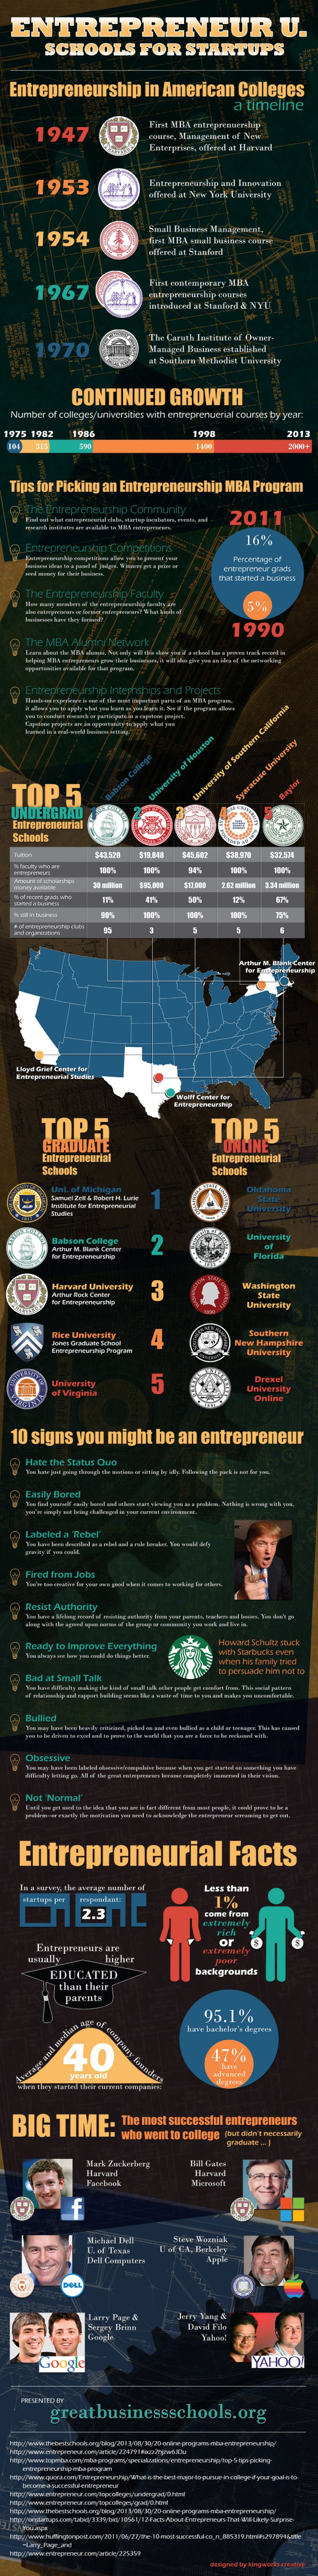 Entrepreneur University: Schools for Start ups